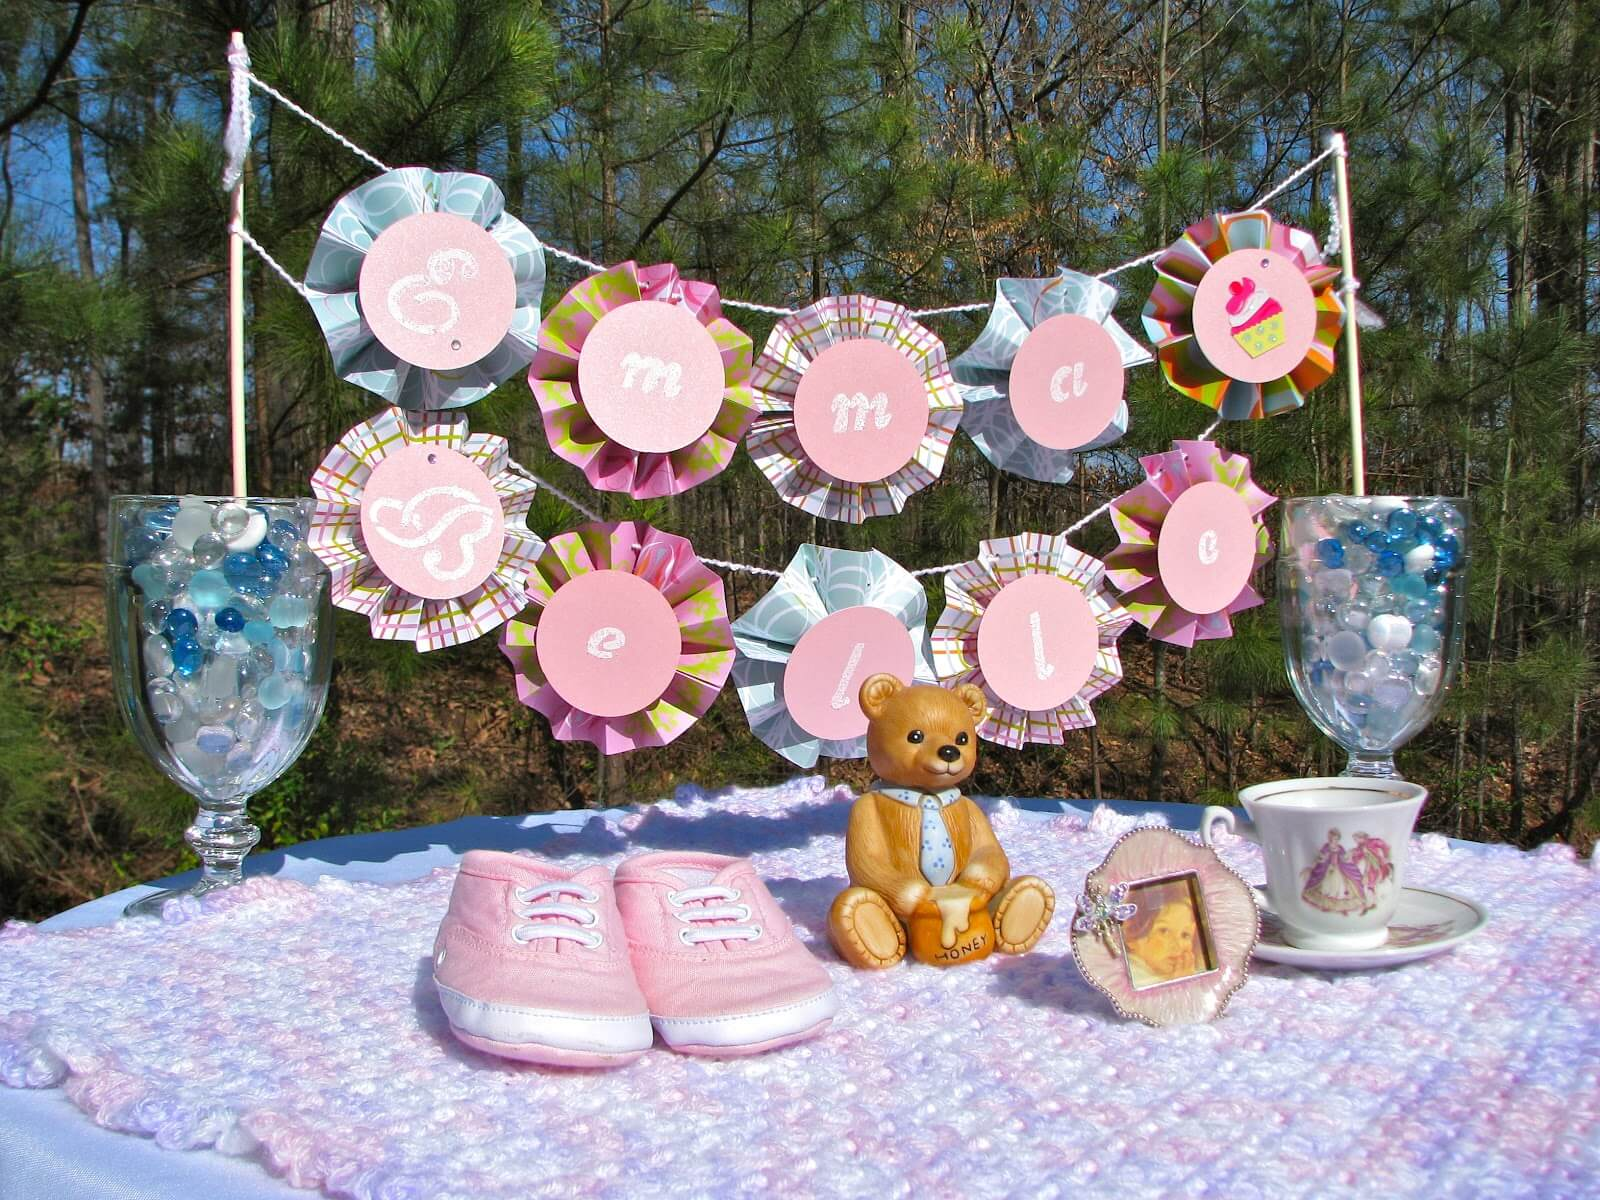 Full Size of Baby Shower:89+ Indulging Baby Shower Banner Picture Inspirations Baby Shower Banner Baby Shower Giveaways Baby Shower Baskets Baby Shower Hashtag Ideas Baby Shower Food Lots Of Baby Shower Banner Ideas Decorations